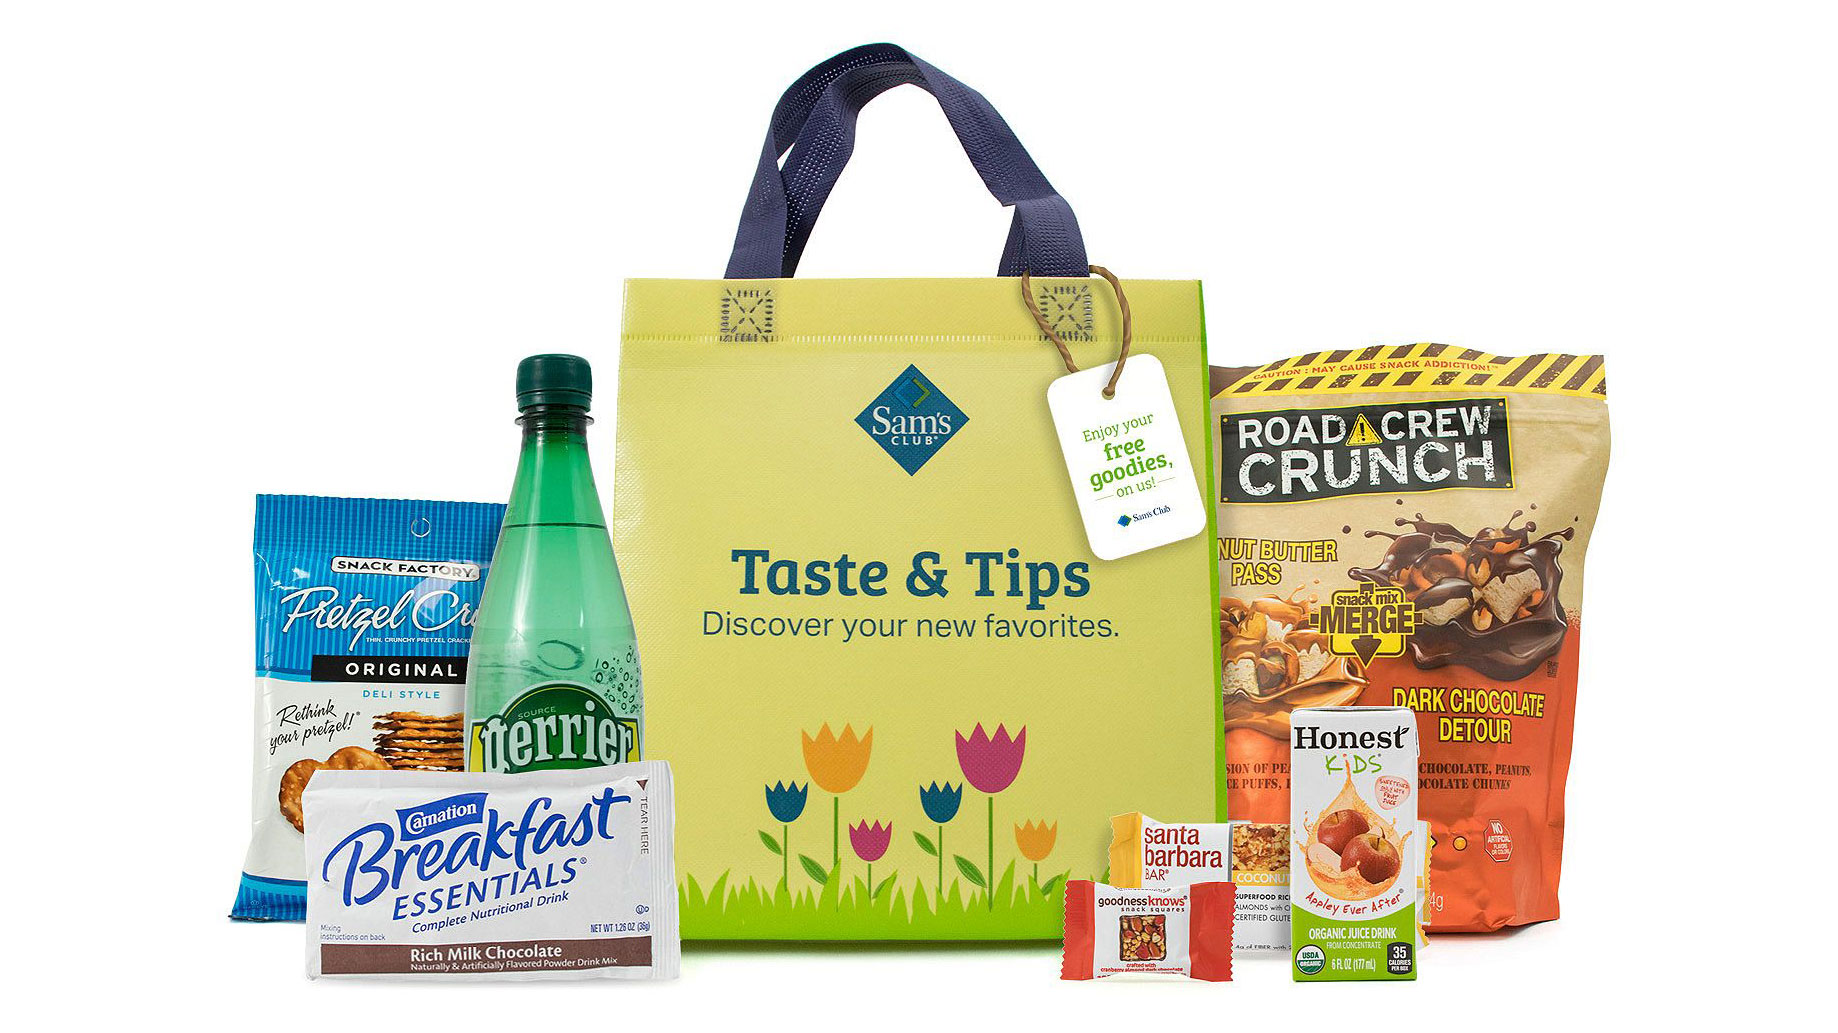 Sam's Club Will Deliver Their Legendary Samples to Your Door